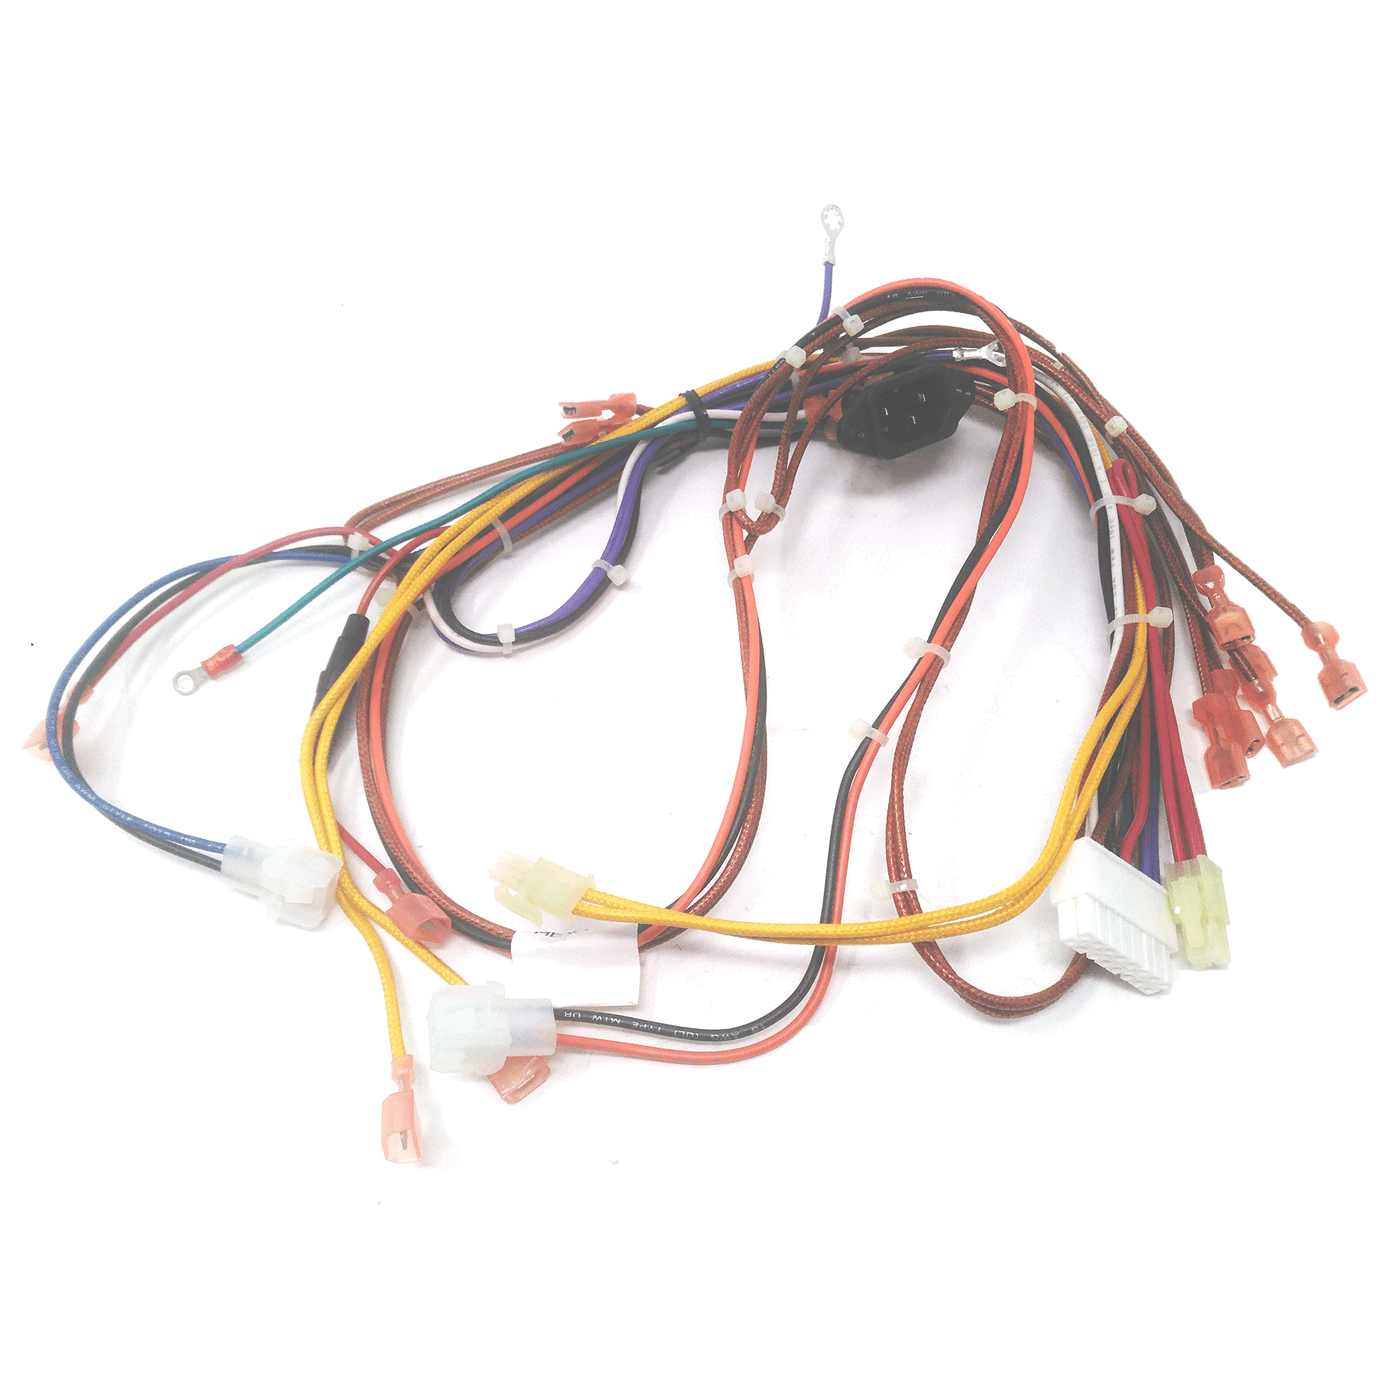 12050815 | Whitfield Profile 30 & 20 Wiring Harness, 12050815